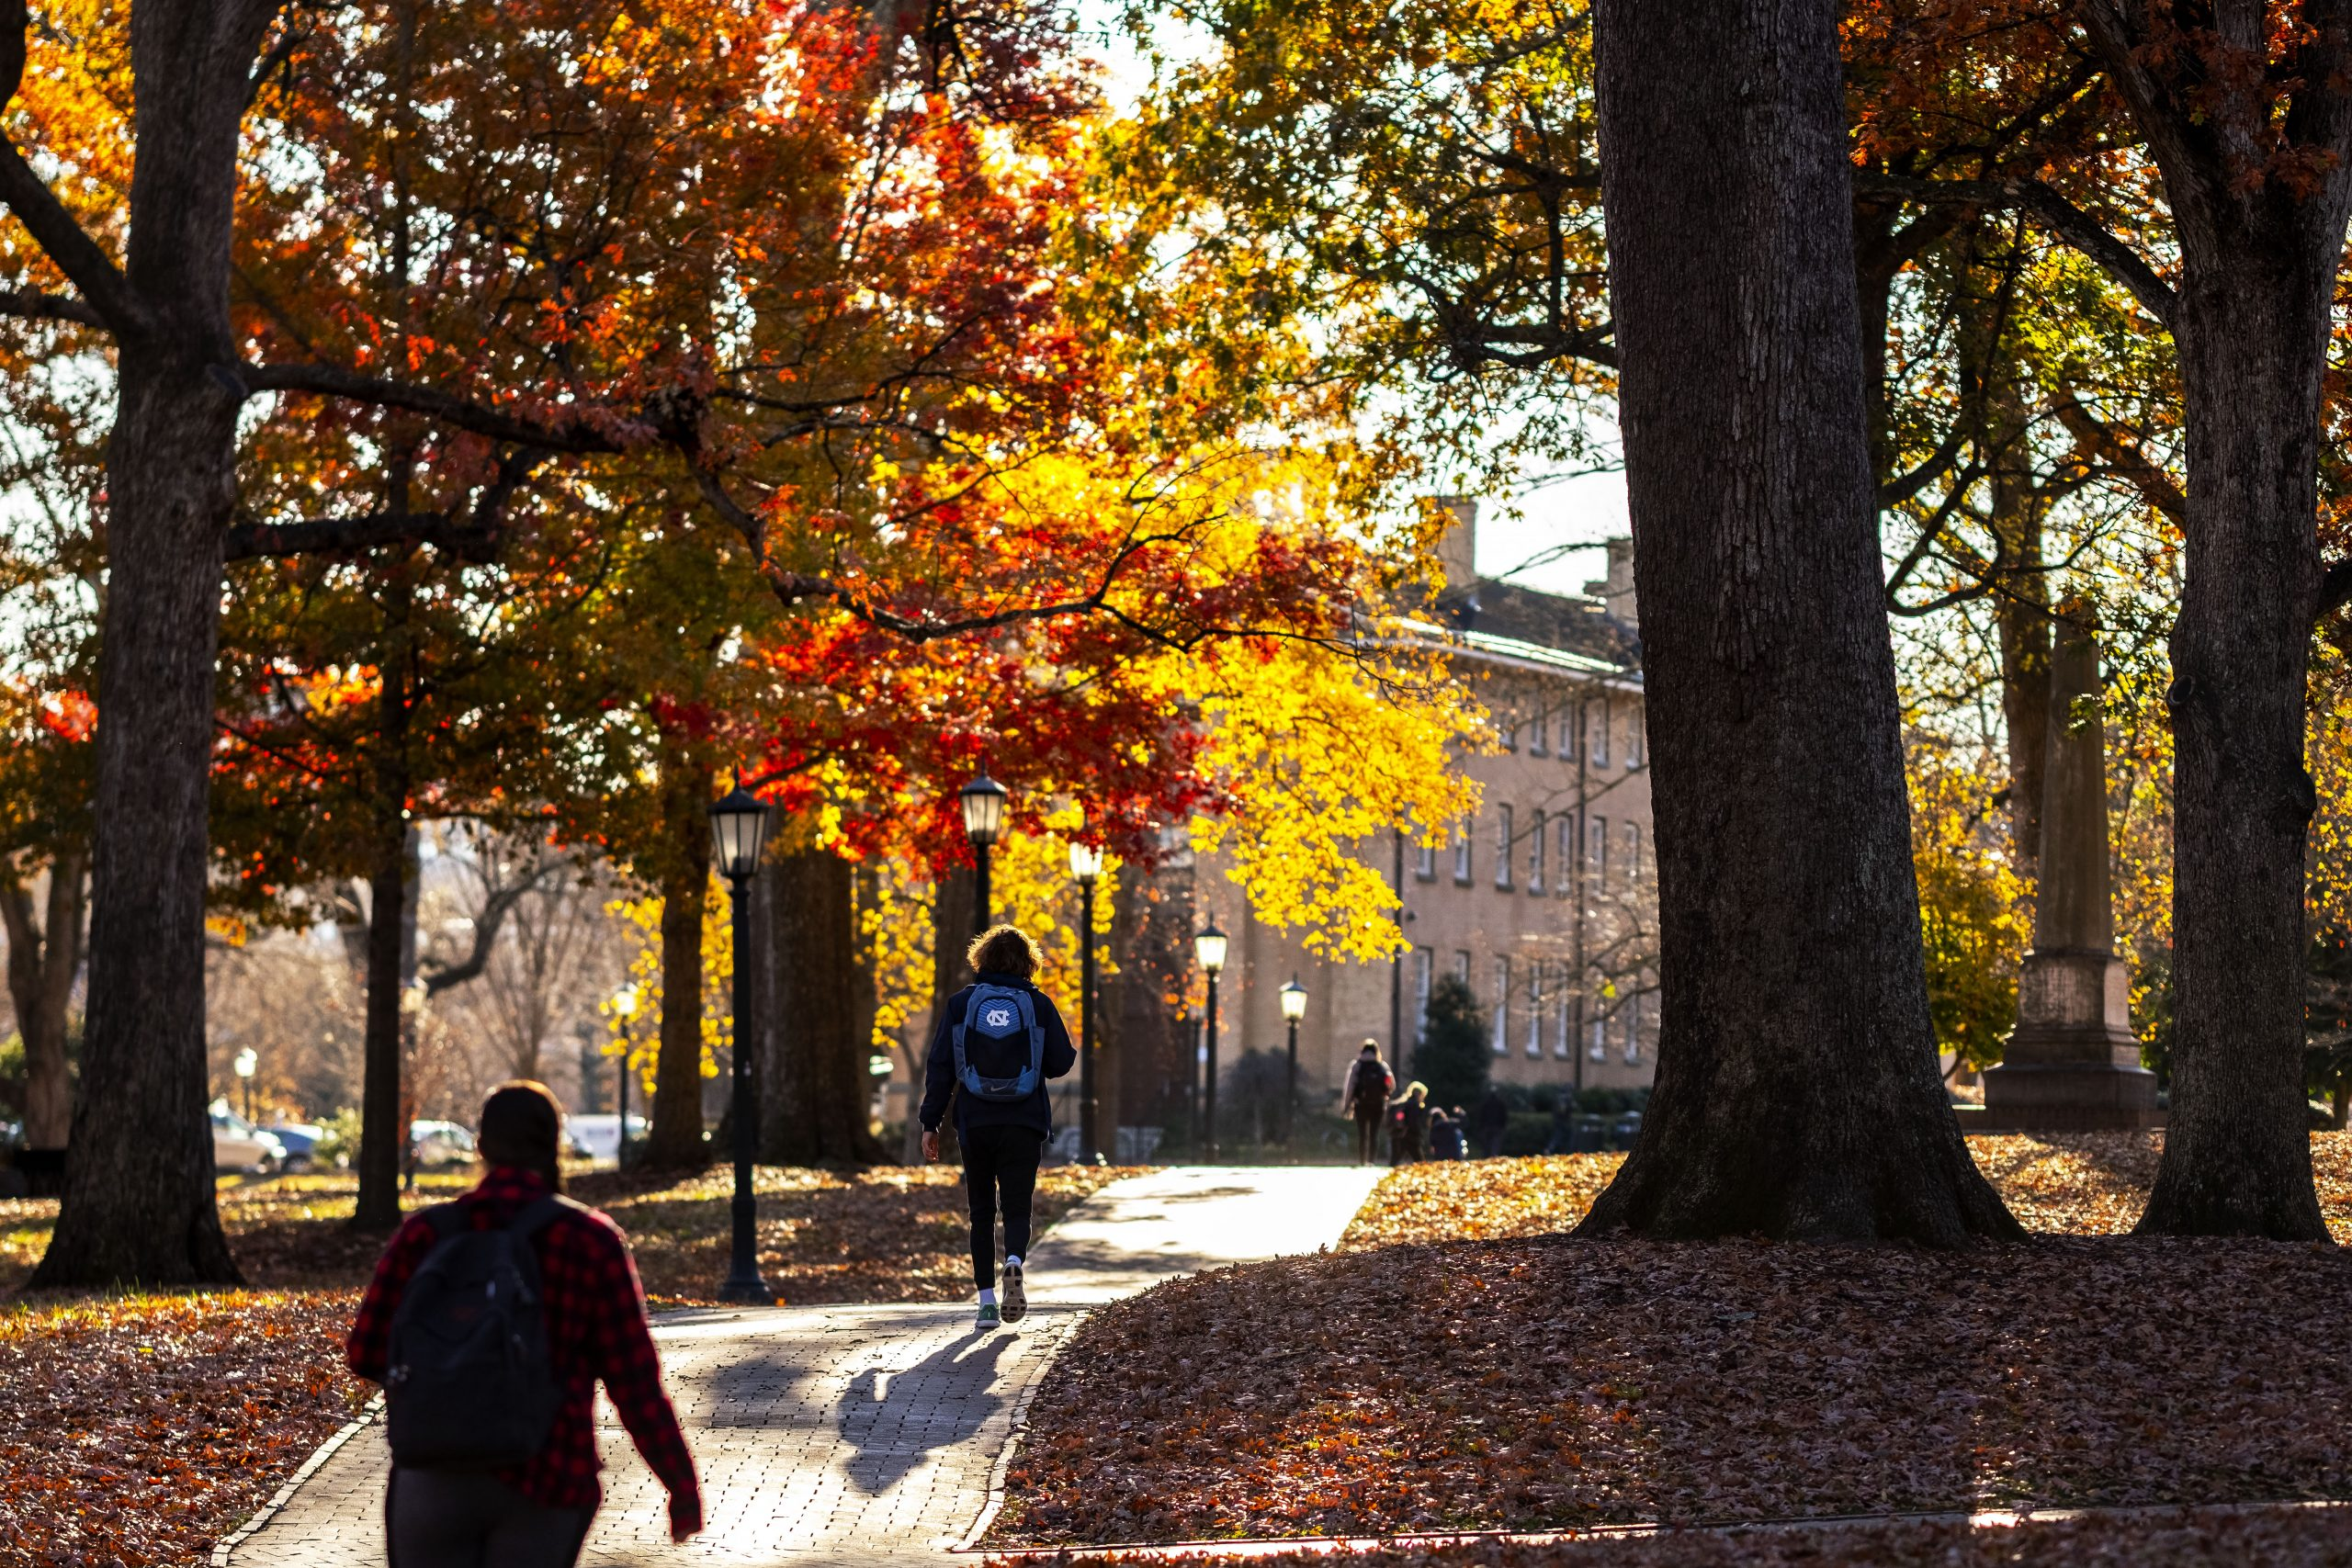 Students under fall leaves walking toward campus building.